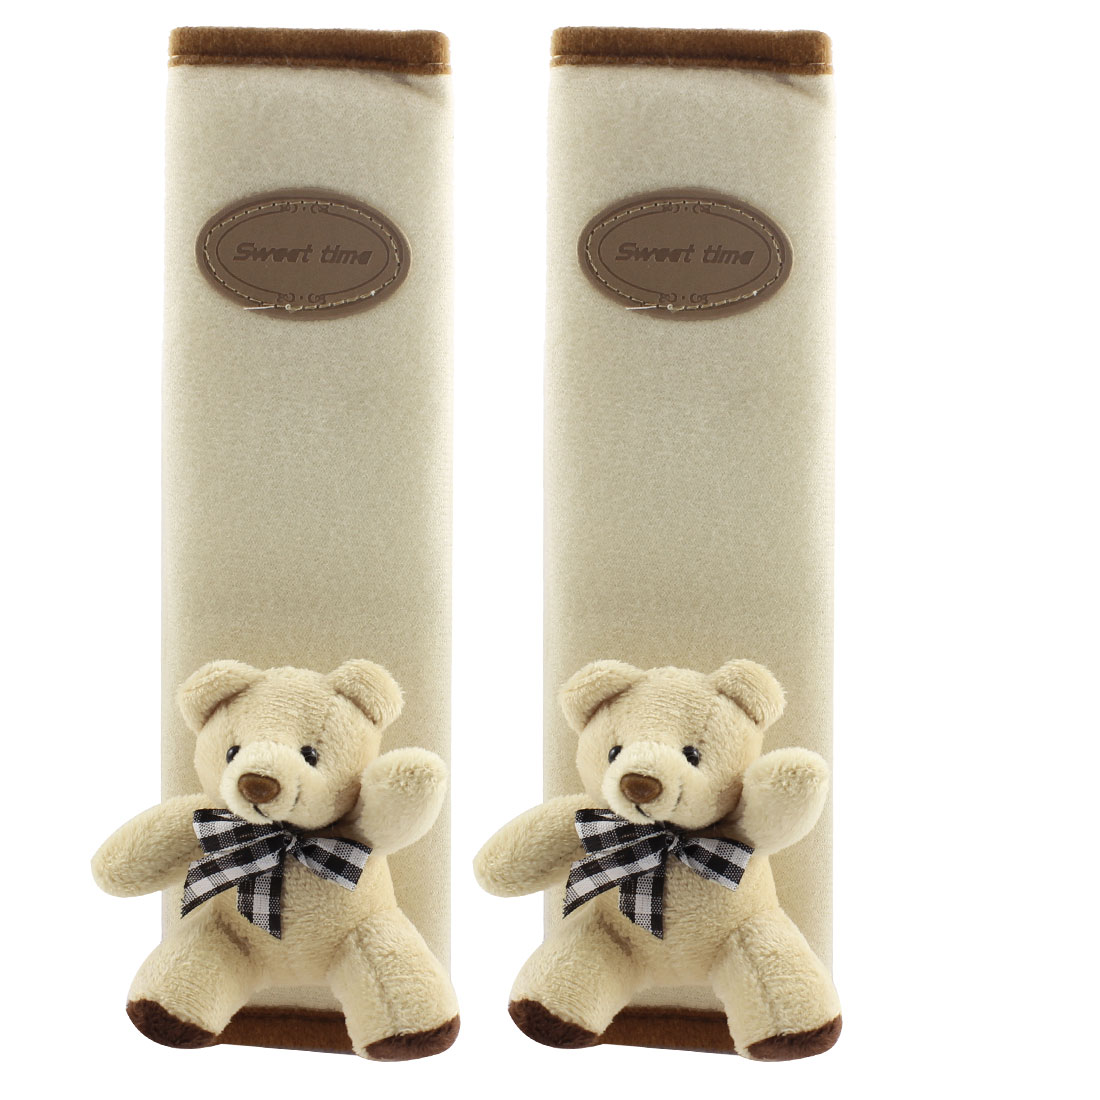 Car Safety Seat Belt Cover Bear Decor Shoulder Protector Pad Cushion Beige 2PCS